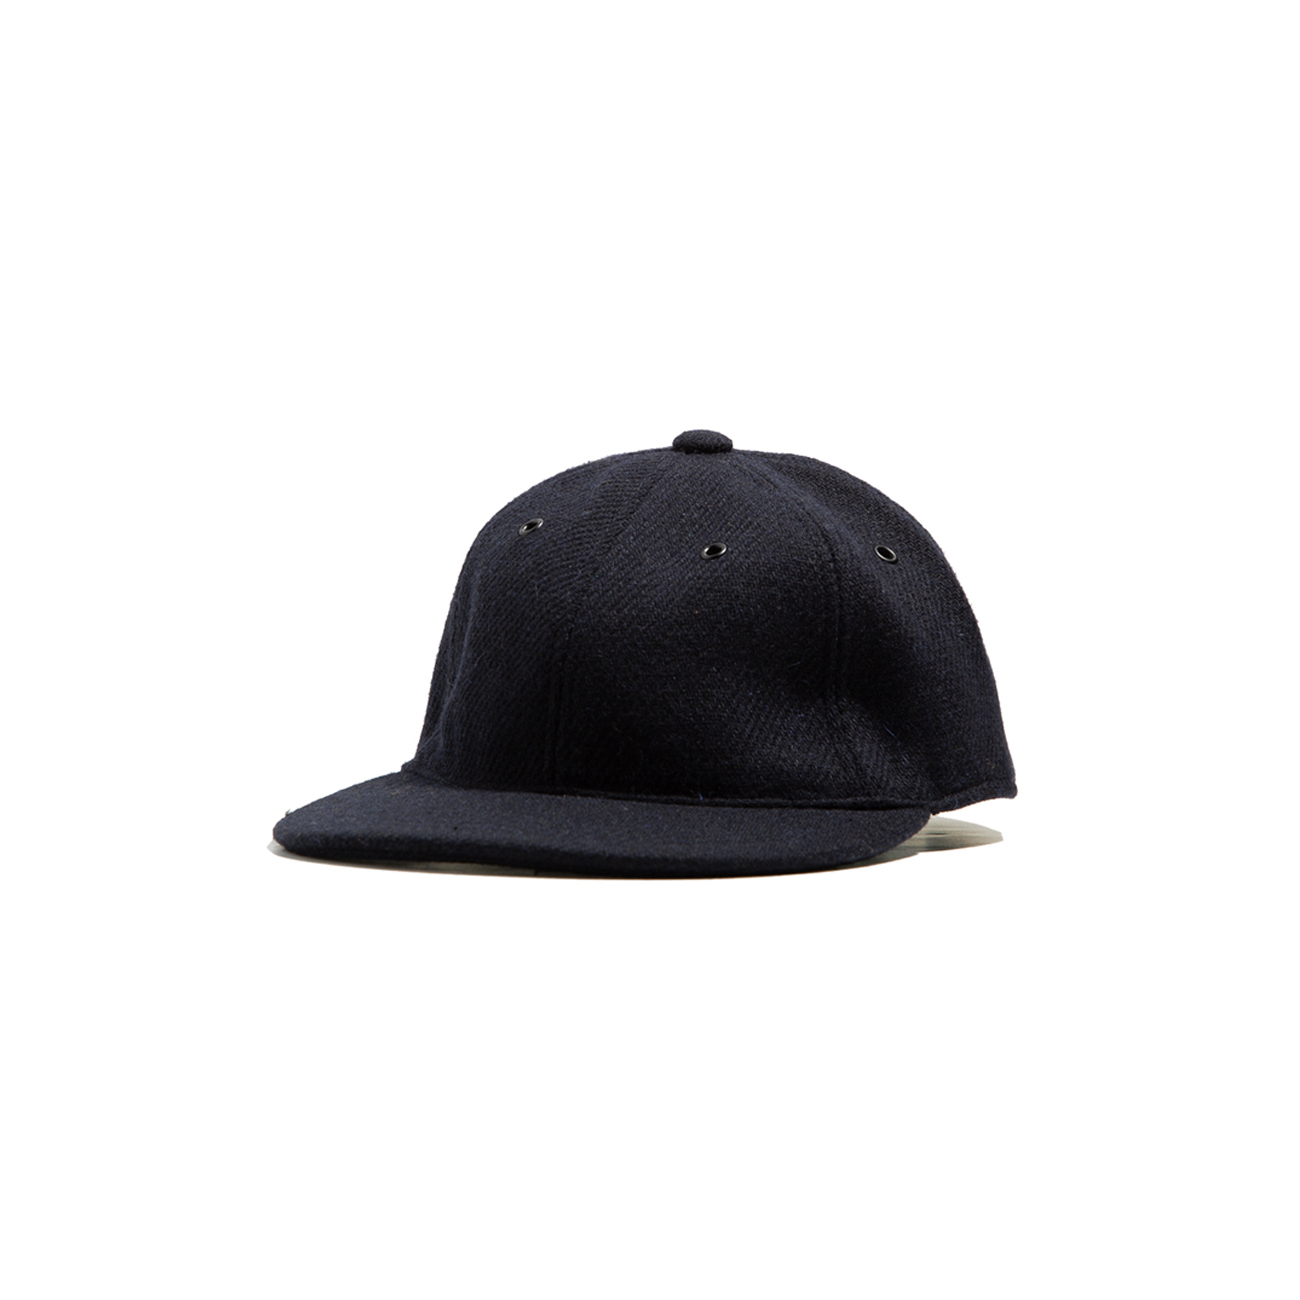 Combi Weaves Ball Cap